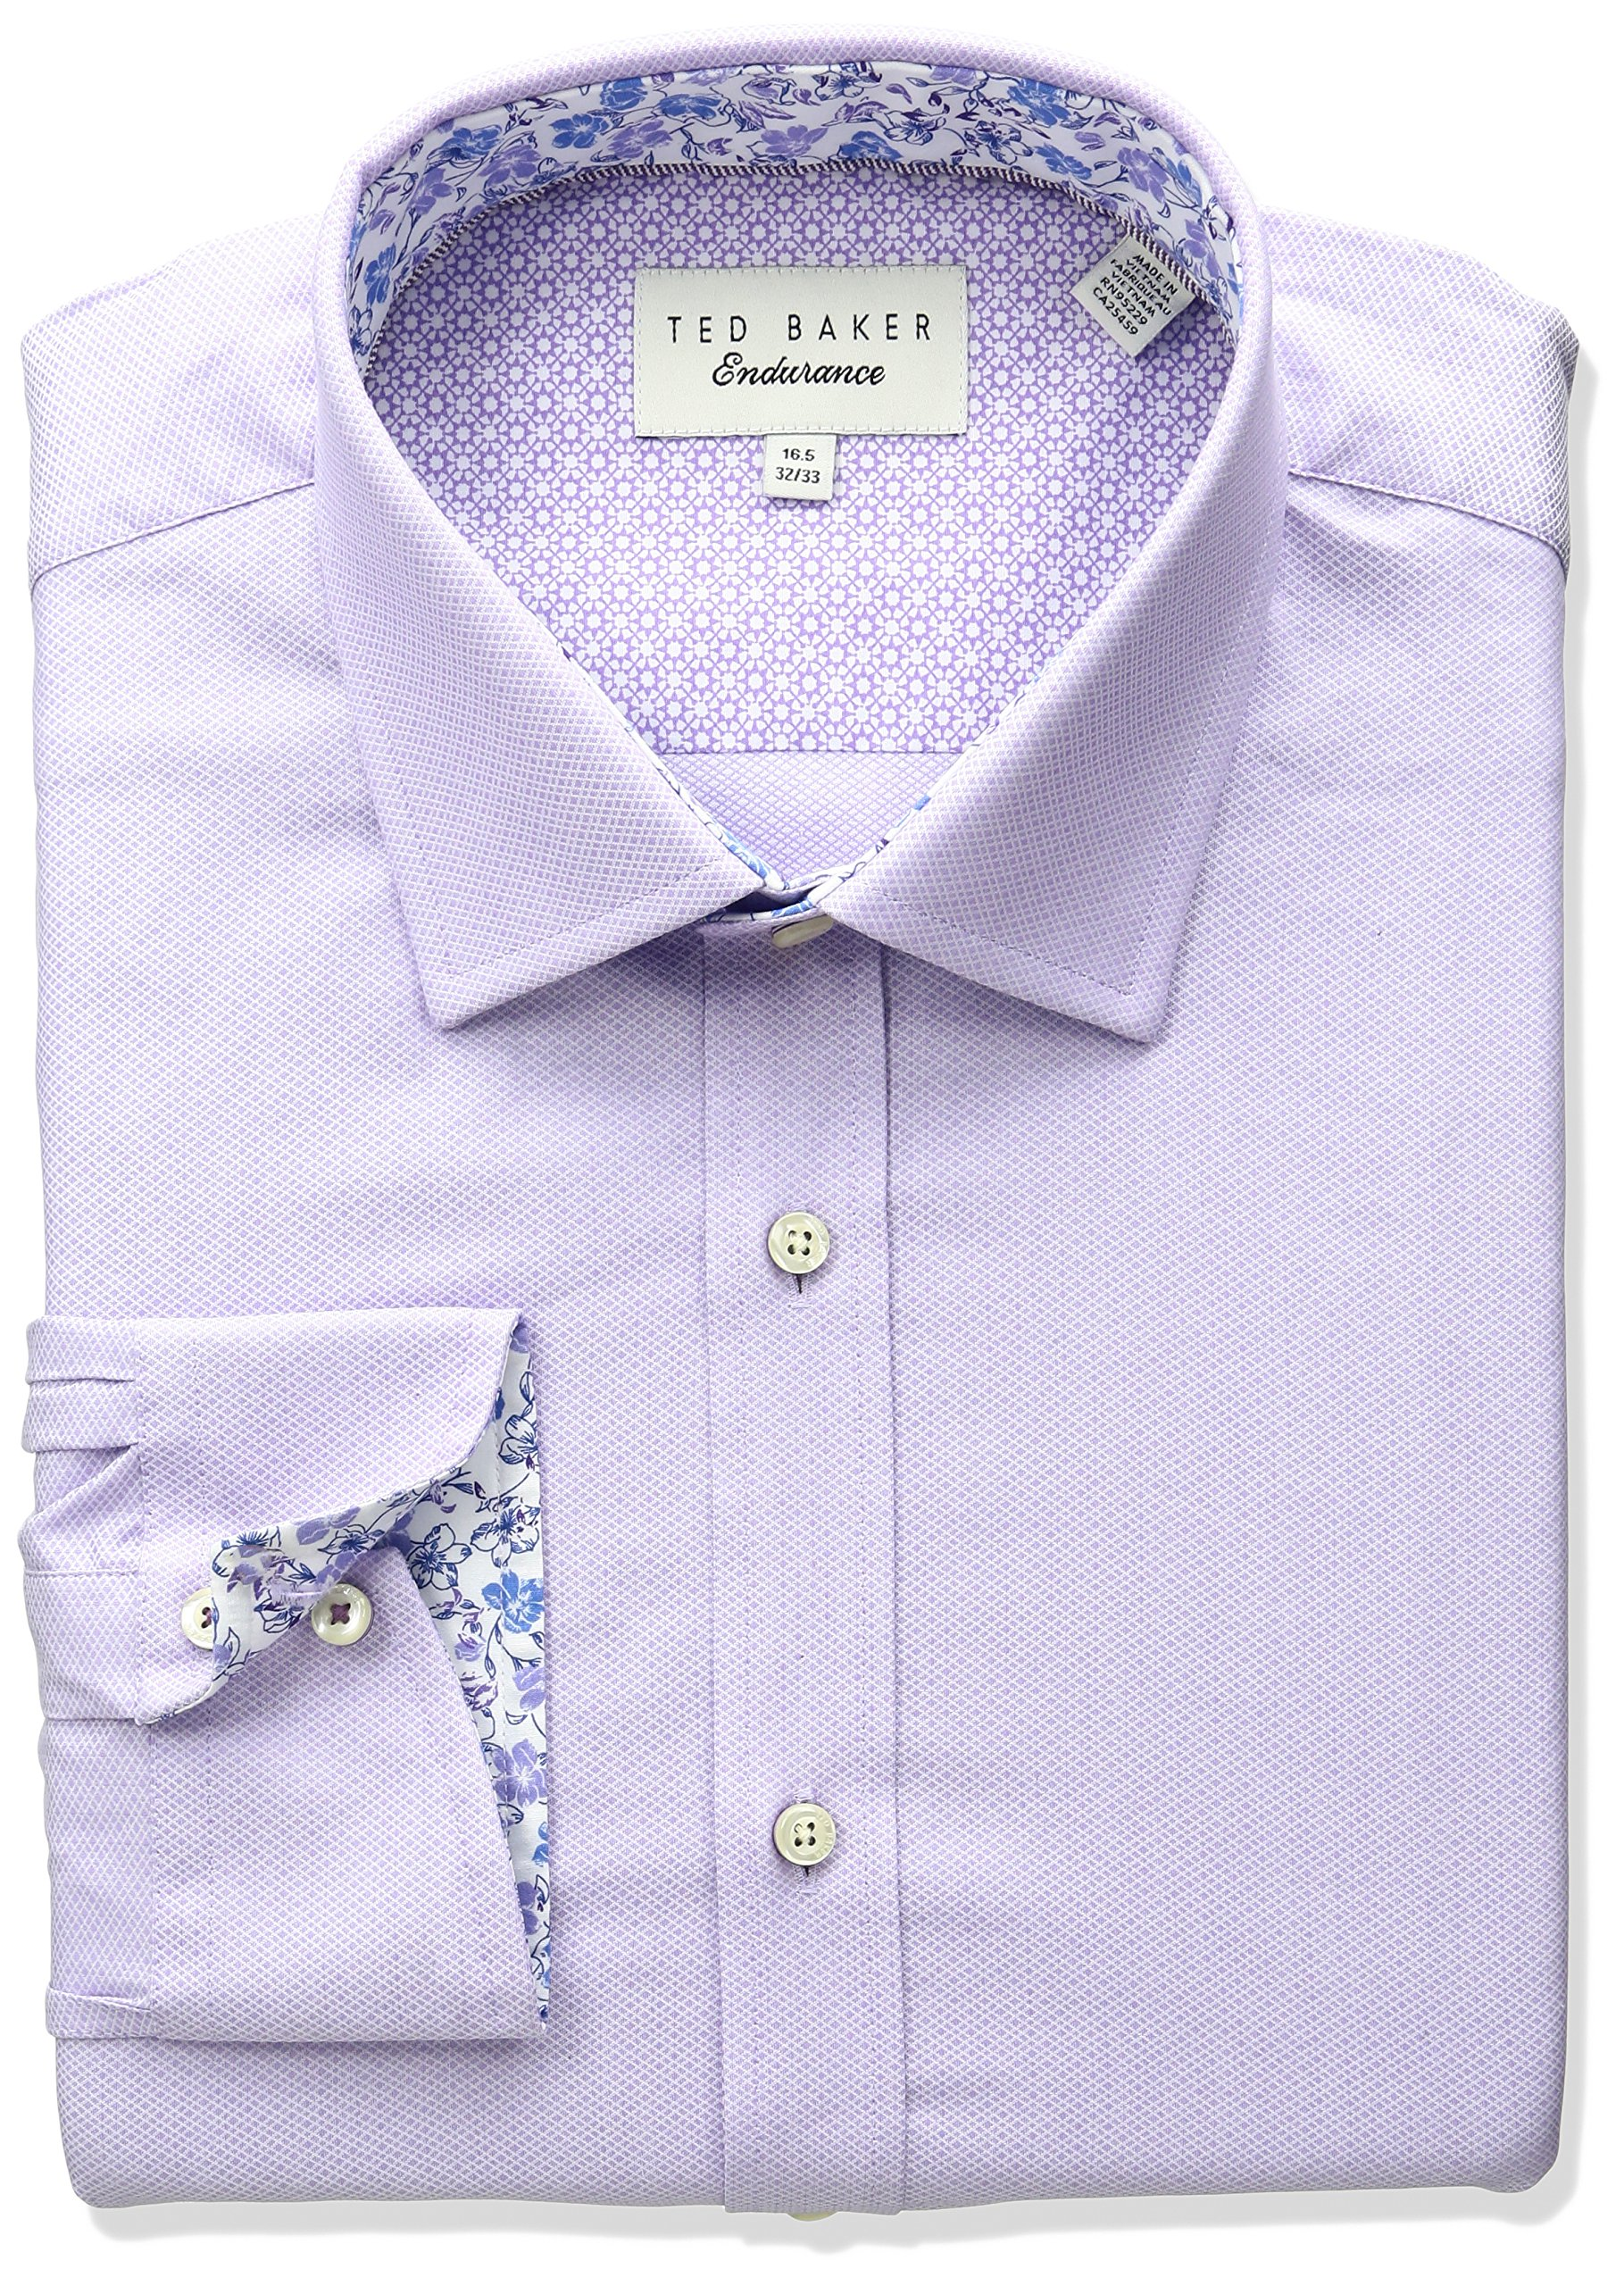 Ted Baker Men's Slim Fit Elias Solid Dress Shirt, Purple, 16.5'' Neck 34''-35'' Sleeve